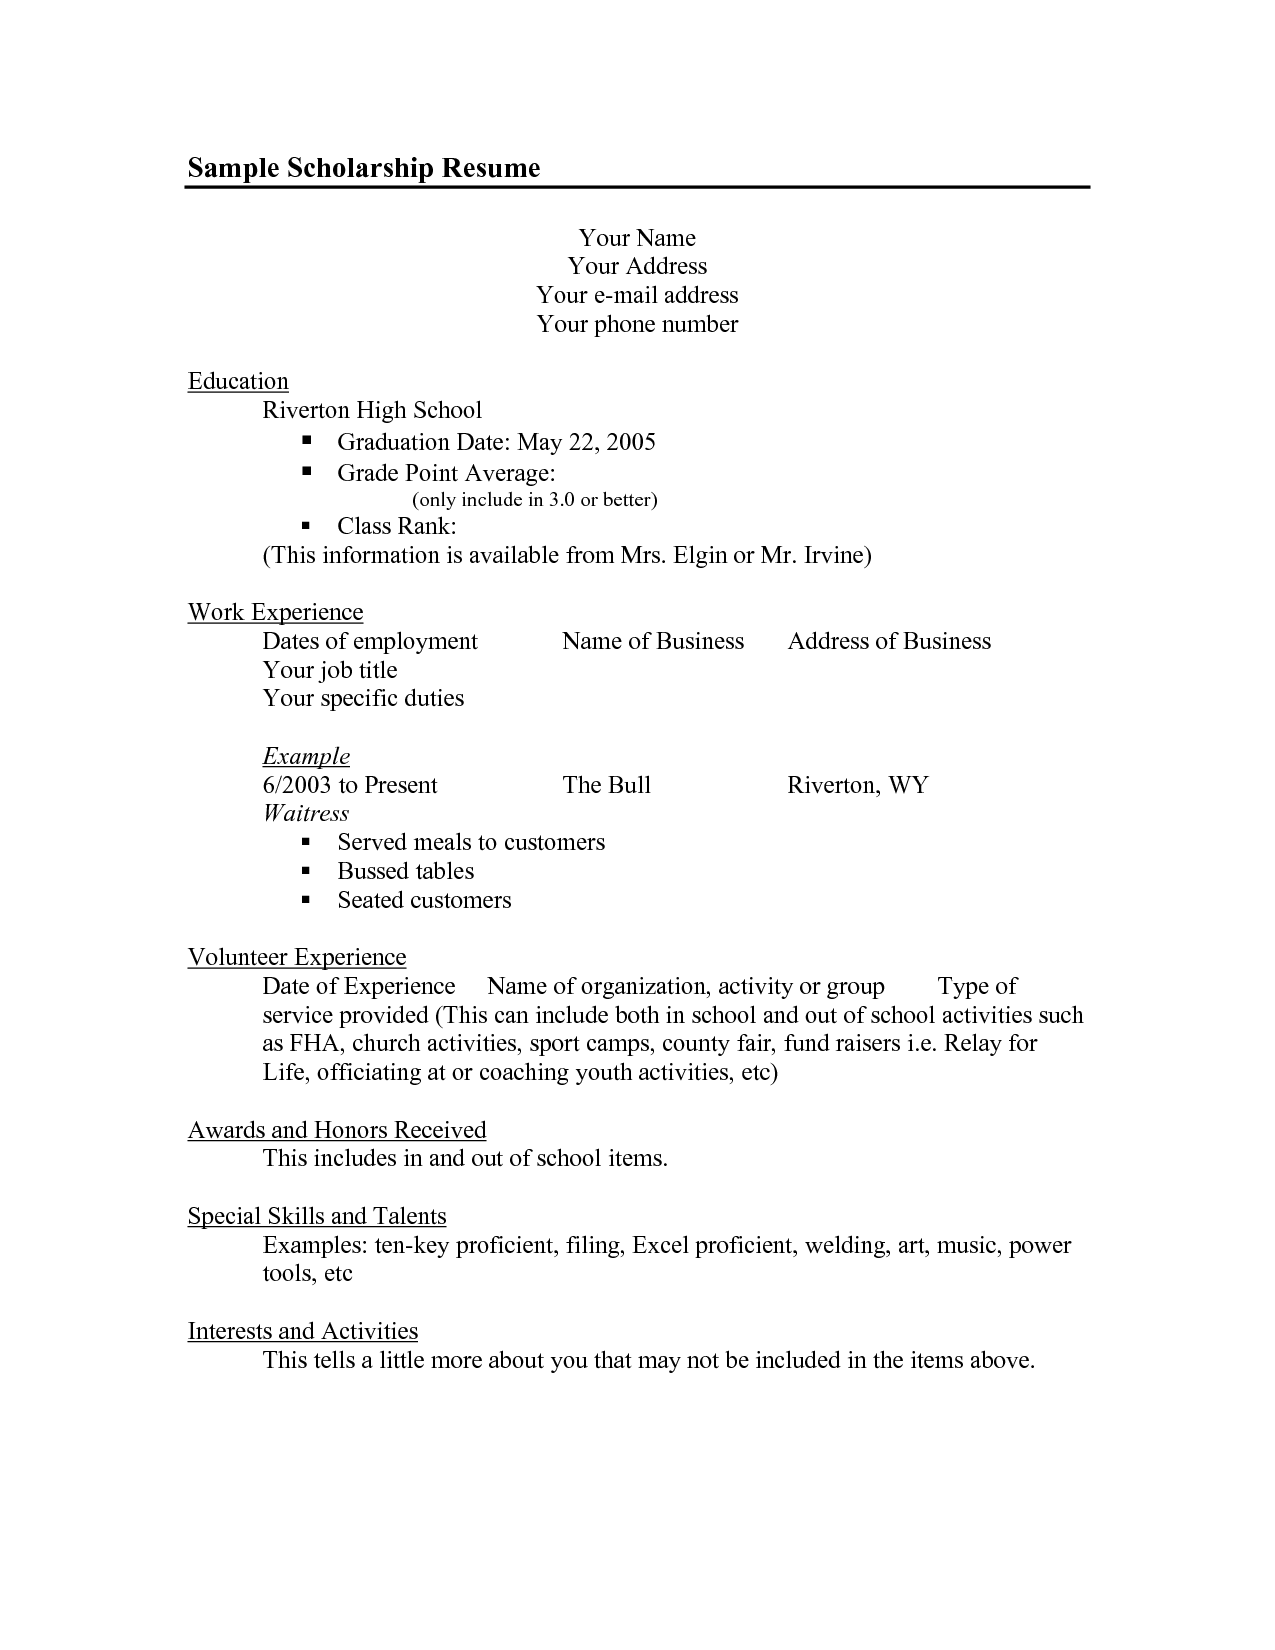 scholarship resume templates | Sample Scholarship Resume Graduation ...